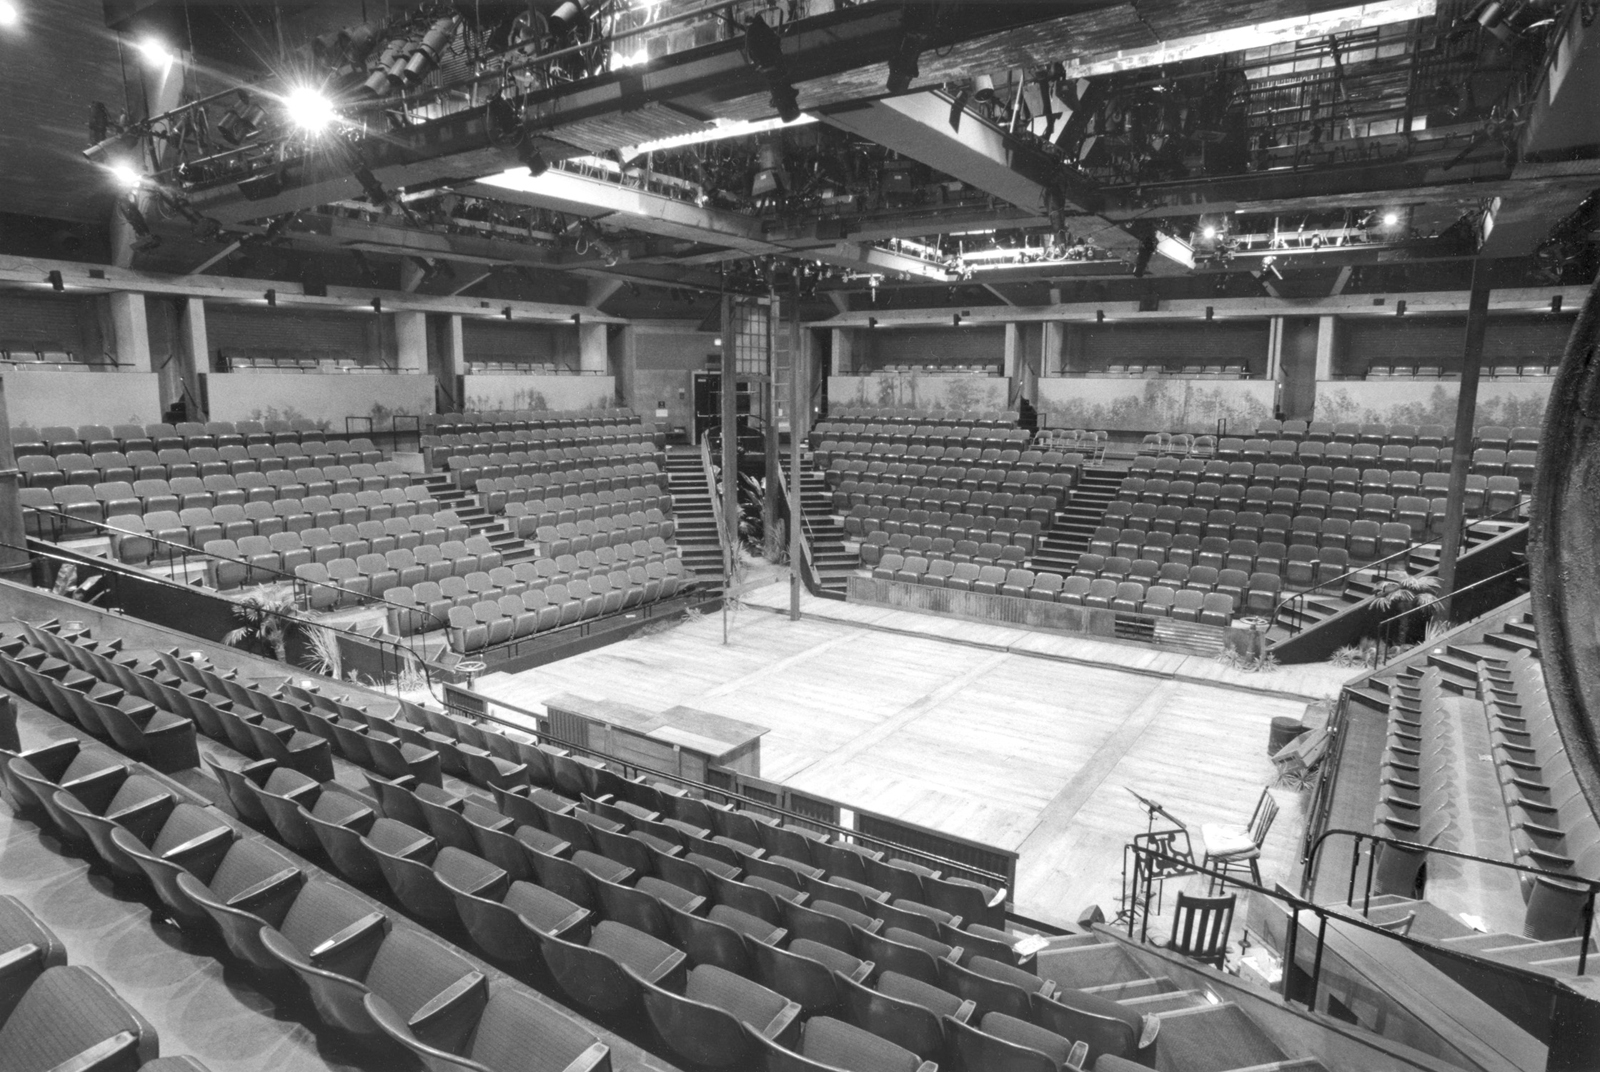 The original Arena Stage complex, designed by Harry Weese, included the 680-seat Fichandler Stage (1961)—the country's first permanent theater-in-the-round facility—and, a decade later, the thrust-stage 500-seat Kreeger Theatre, both now listed as histori